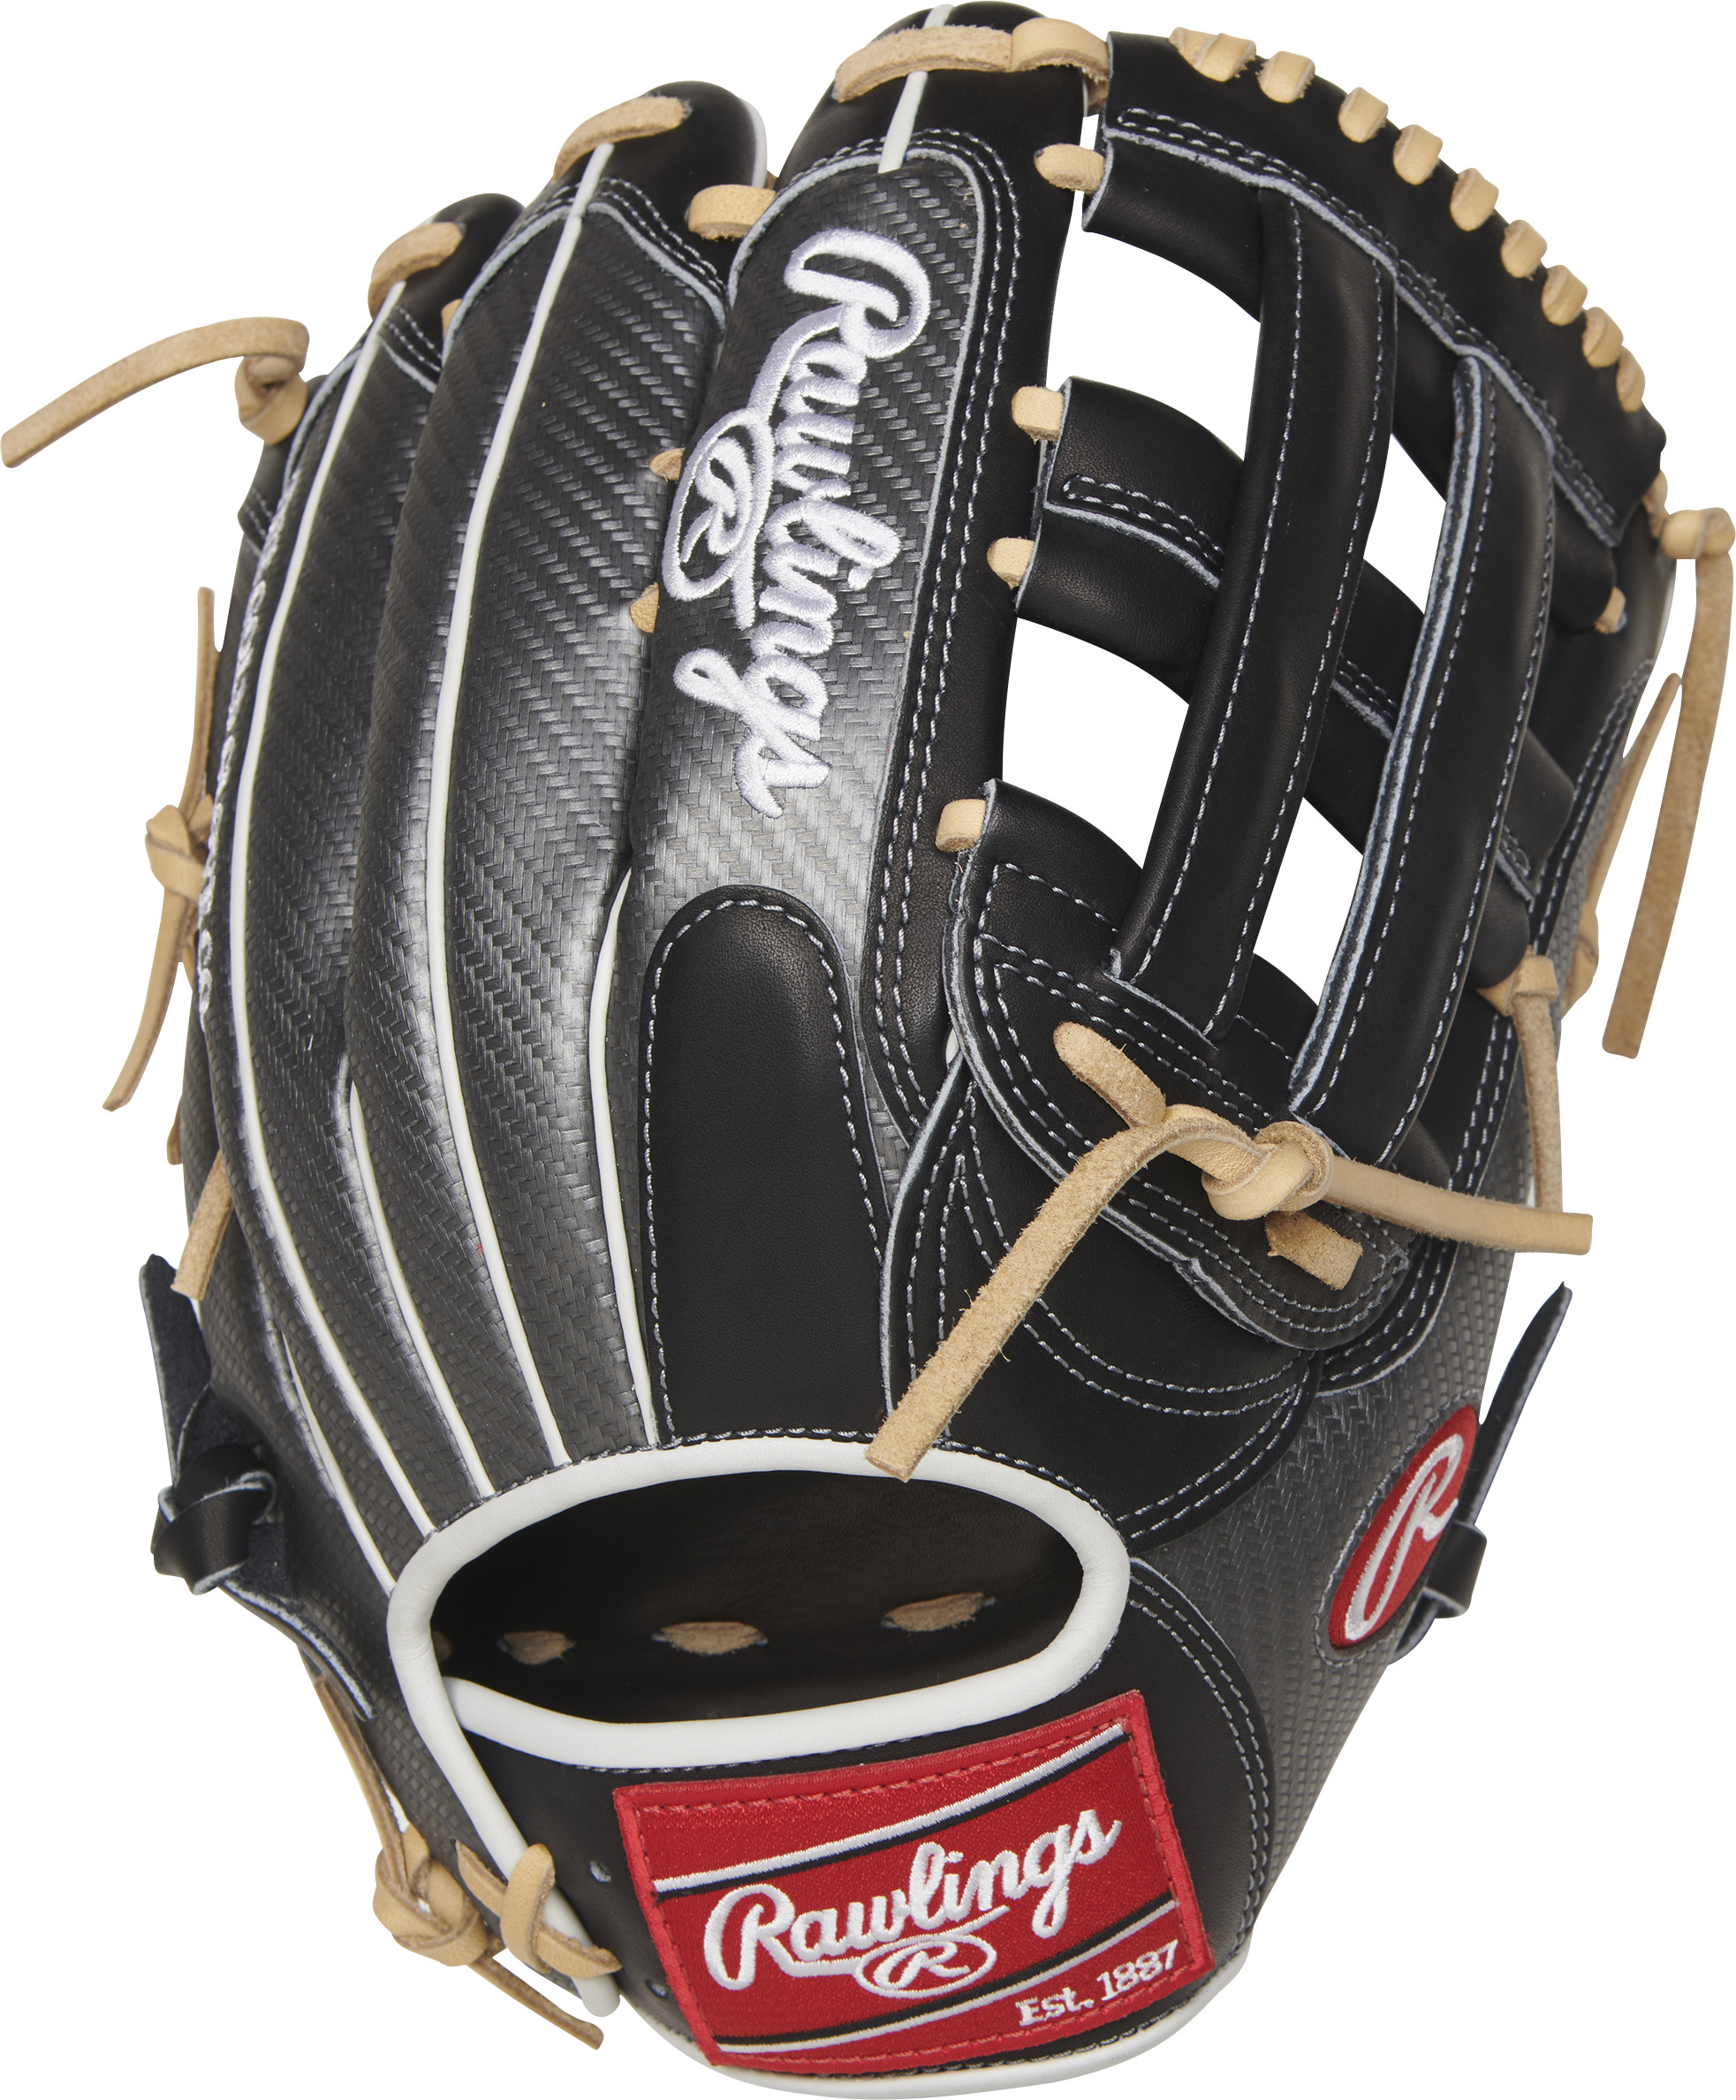 http://www.bestbatdeals.com/images/gloves/rawlings/PRO3039-6BCF-2.jpg